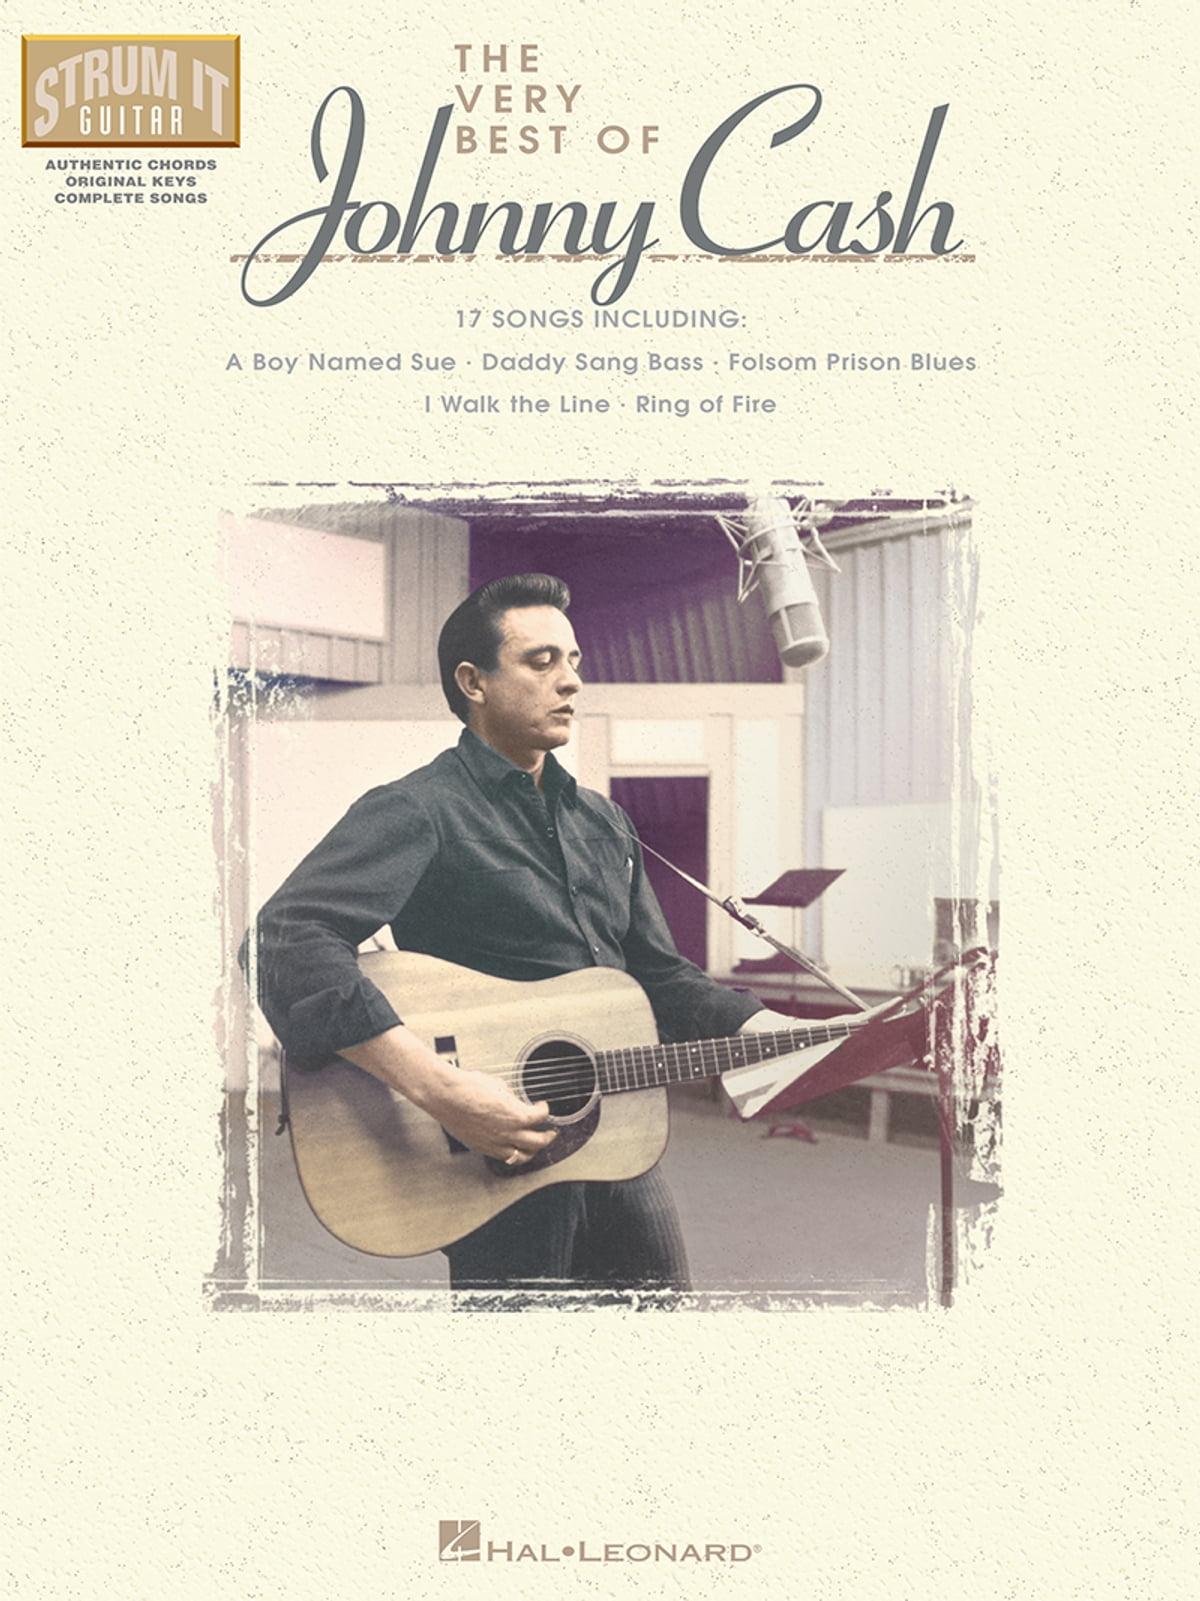 The Very Best Of Johnny Cash Songbook Ebook By Johnny Cash